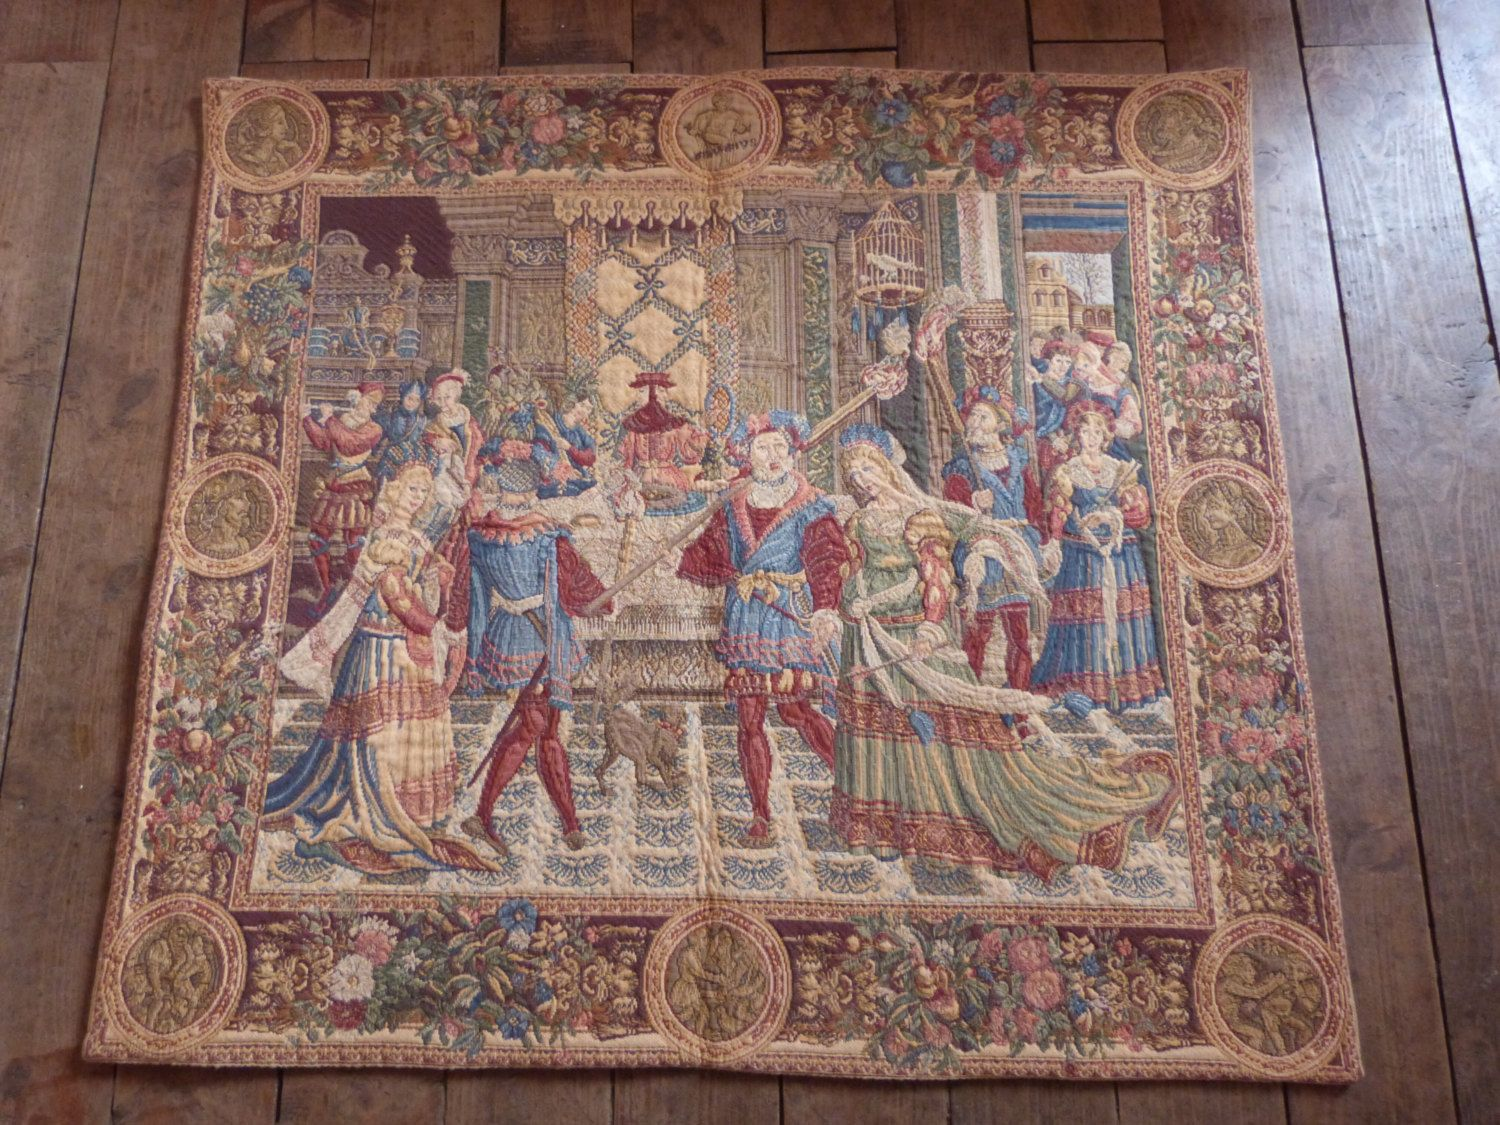 vintage french tapestry wall hanging art decor 1900s chateau wall vintage french tapestry wall hanging art decor chateau wall tapestry woven w medieval castle theme decor french home decor tapestries by myfrenchantiqueshop